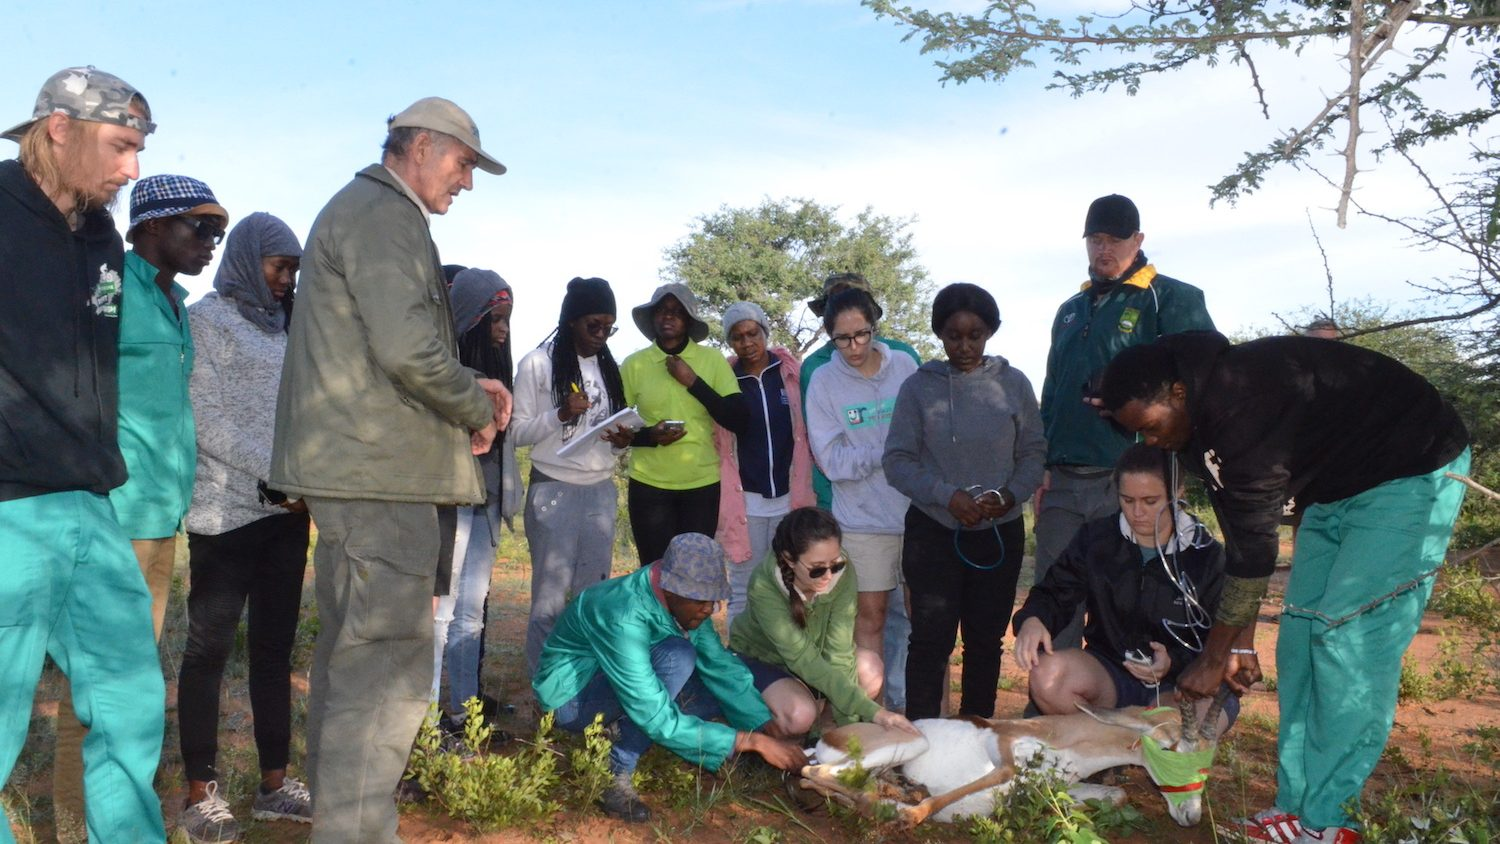 Veterinary Students from UNAM visit AfriCat